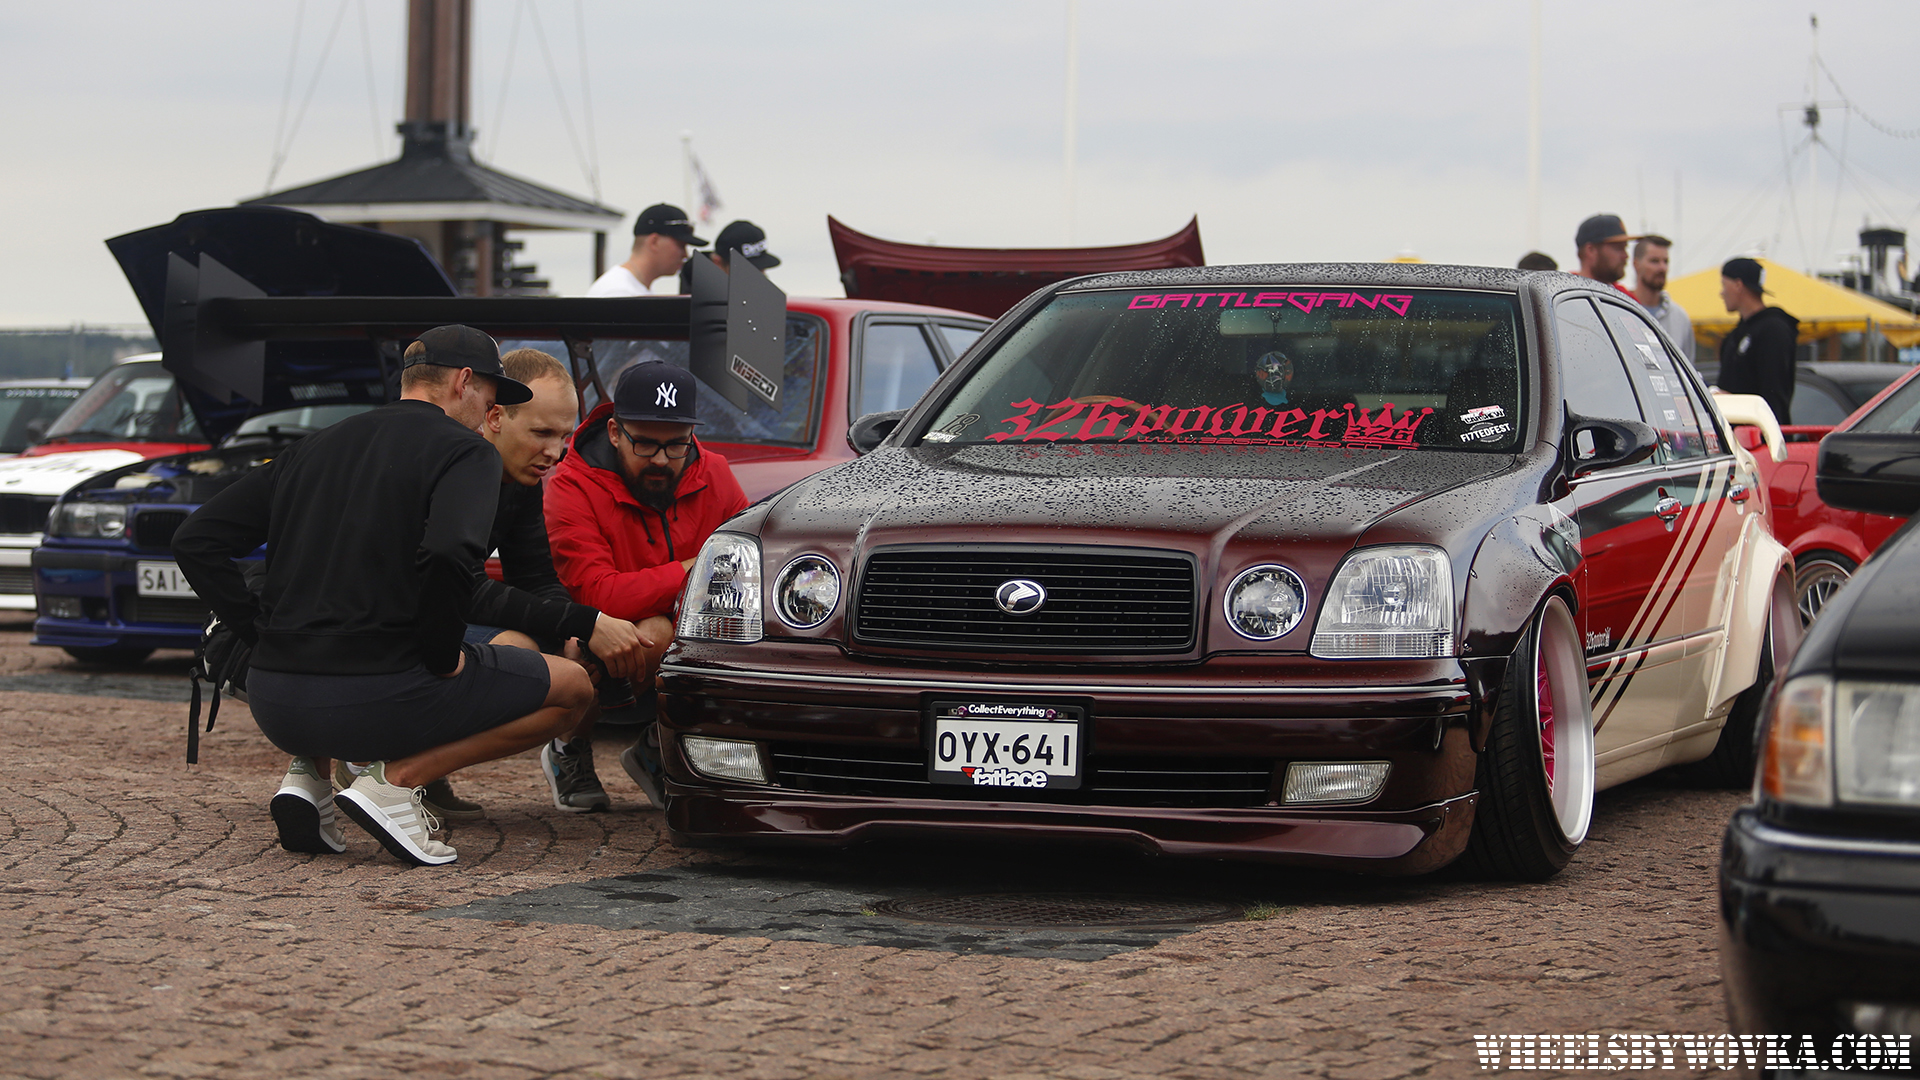 fitted-fest-lahti-finland-cdlcco-2018-by-wheelsbywovka-16